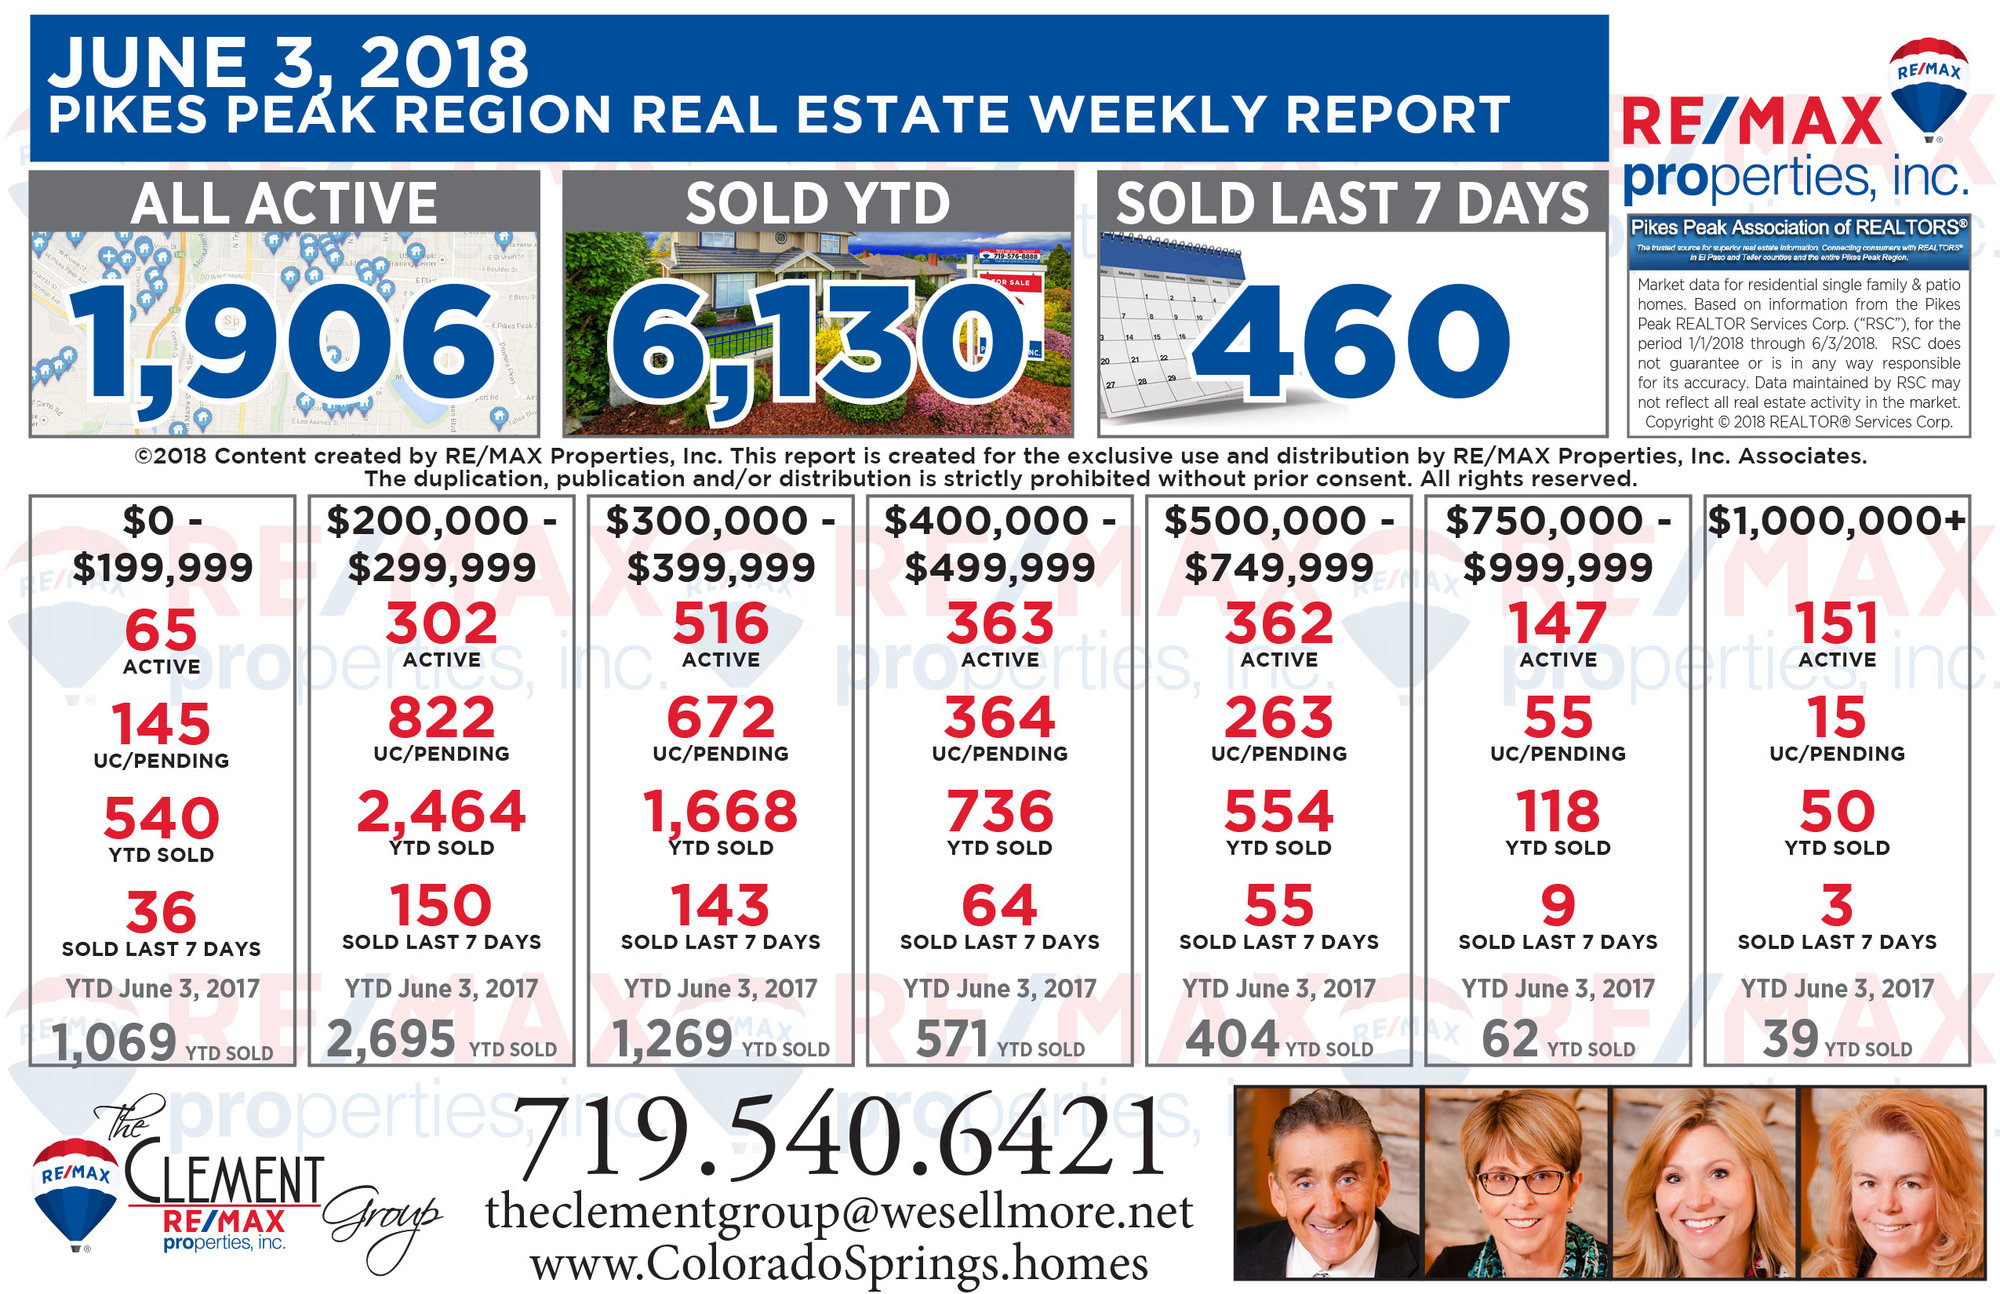 Colorado Springs Real Estate Market Weekly Update - June 3, 2018